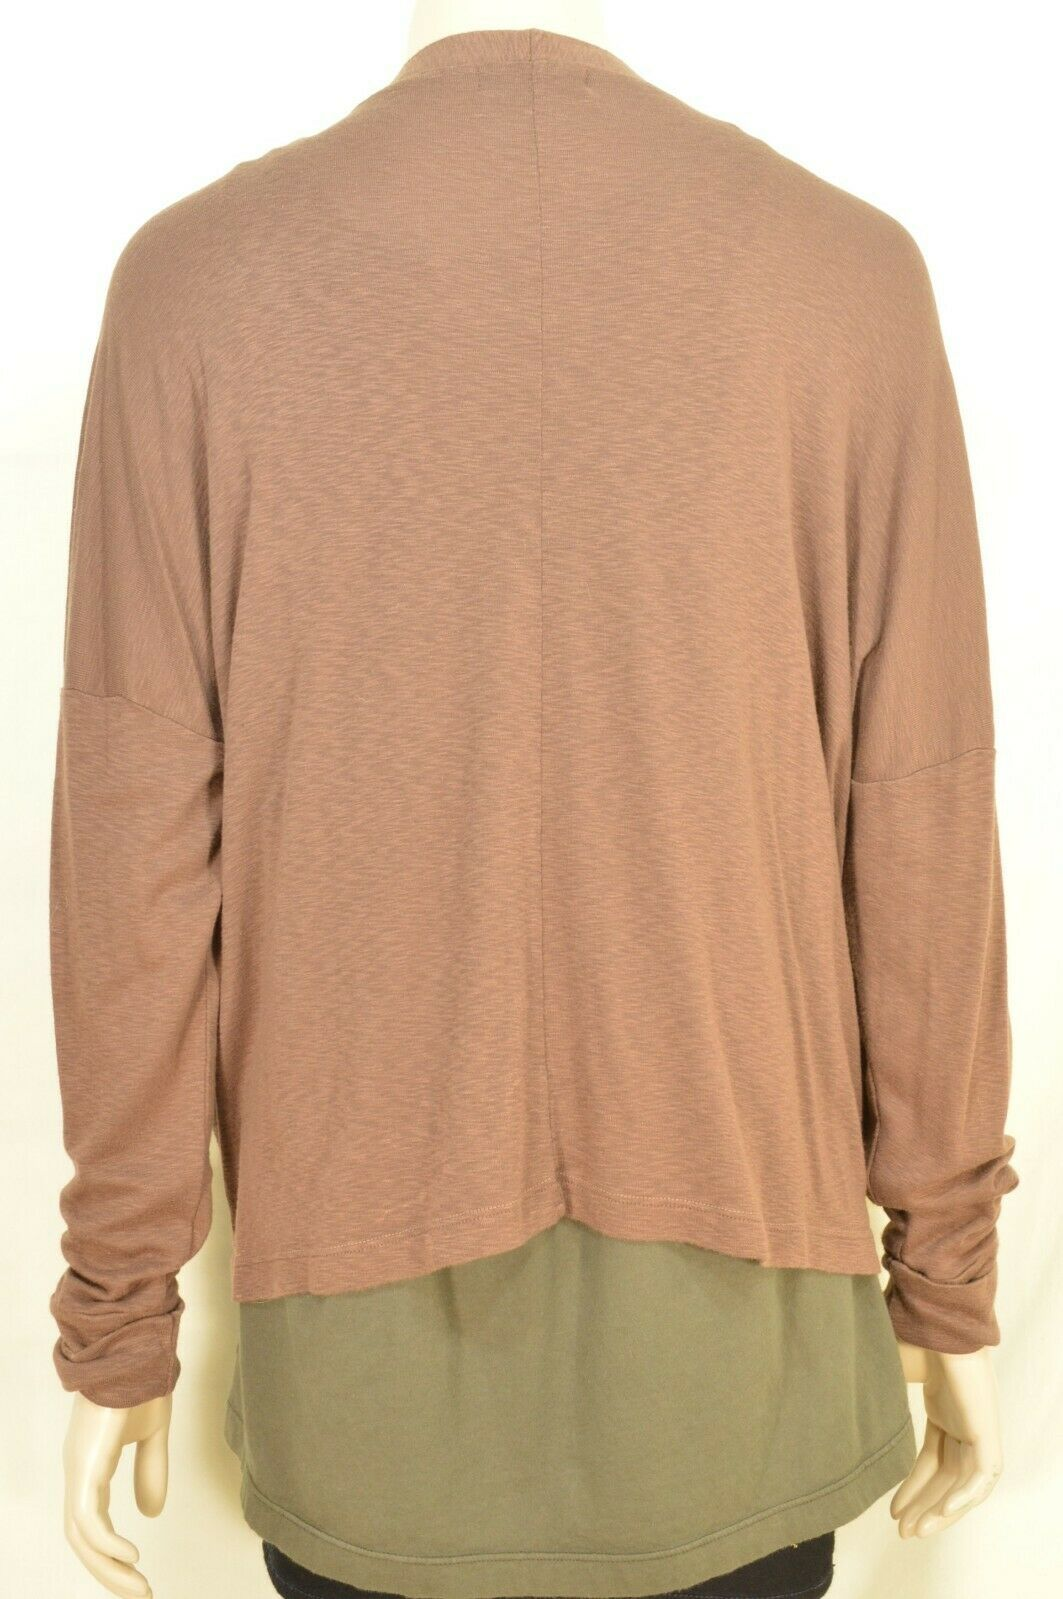 Michael Stars sweater OSFM brown cardigan dropped shoulders lightweight fall USA image 3